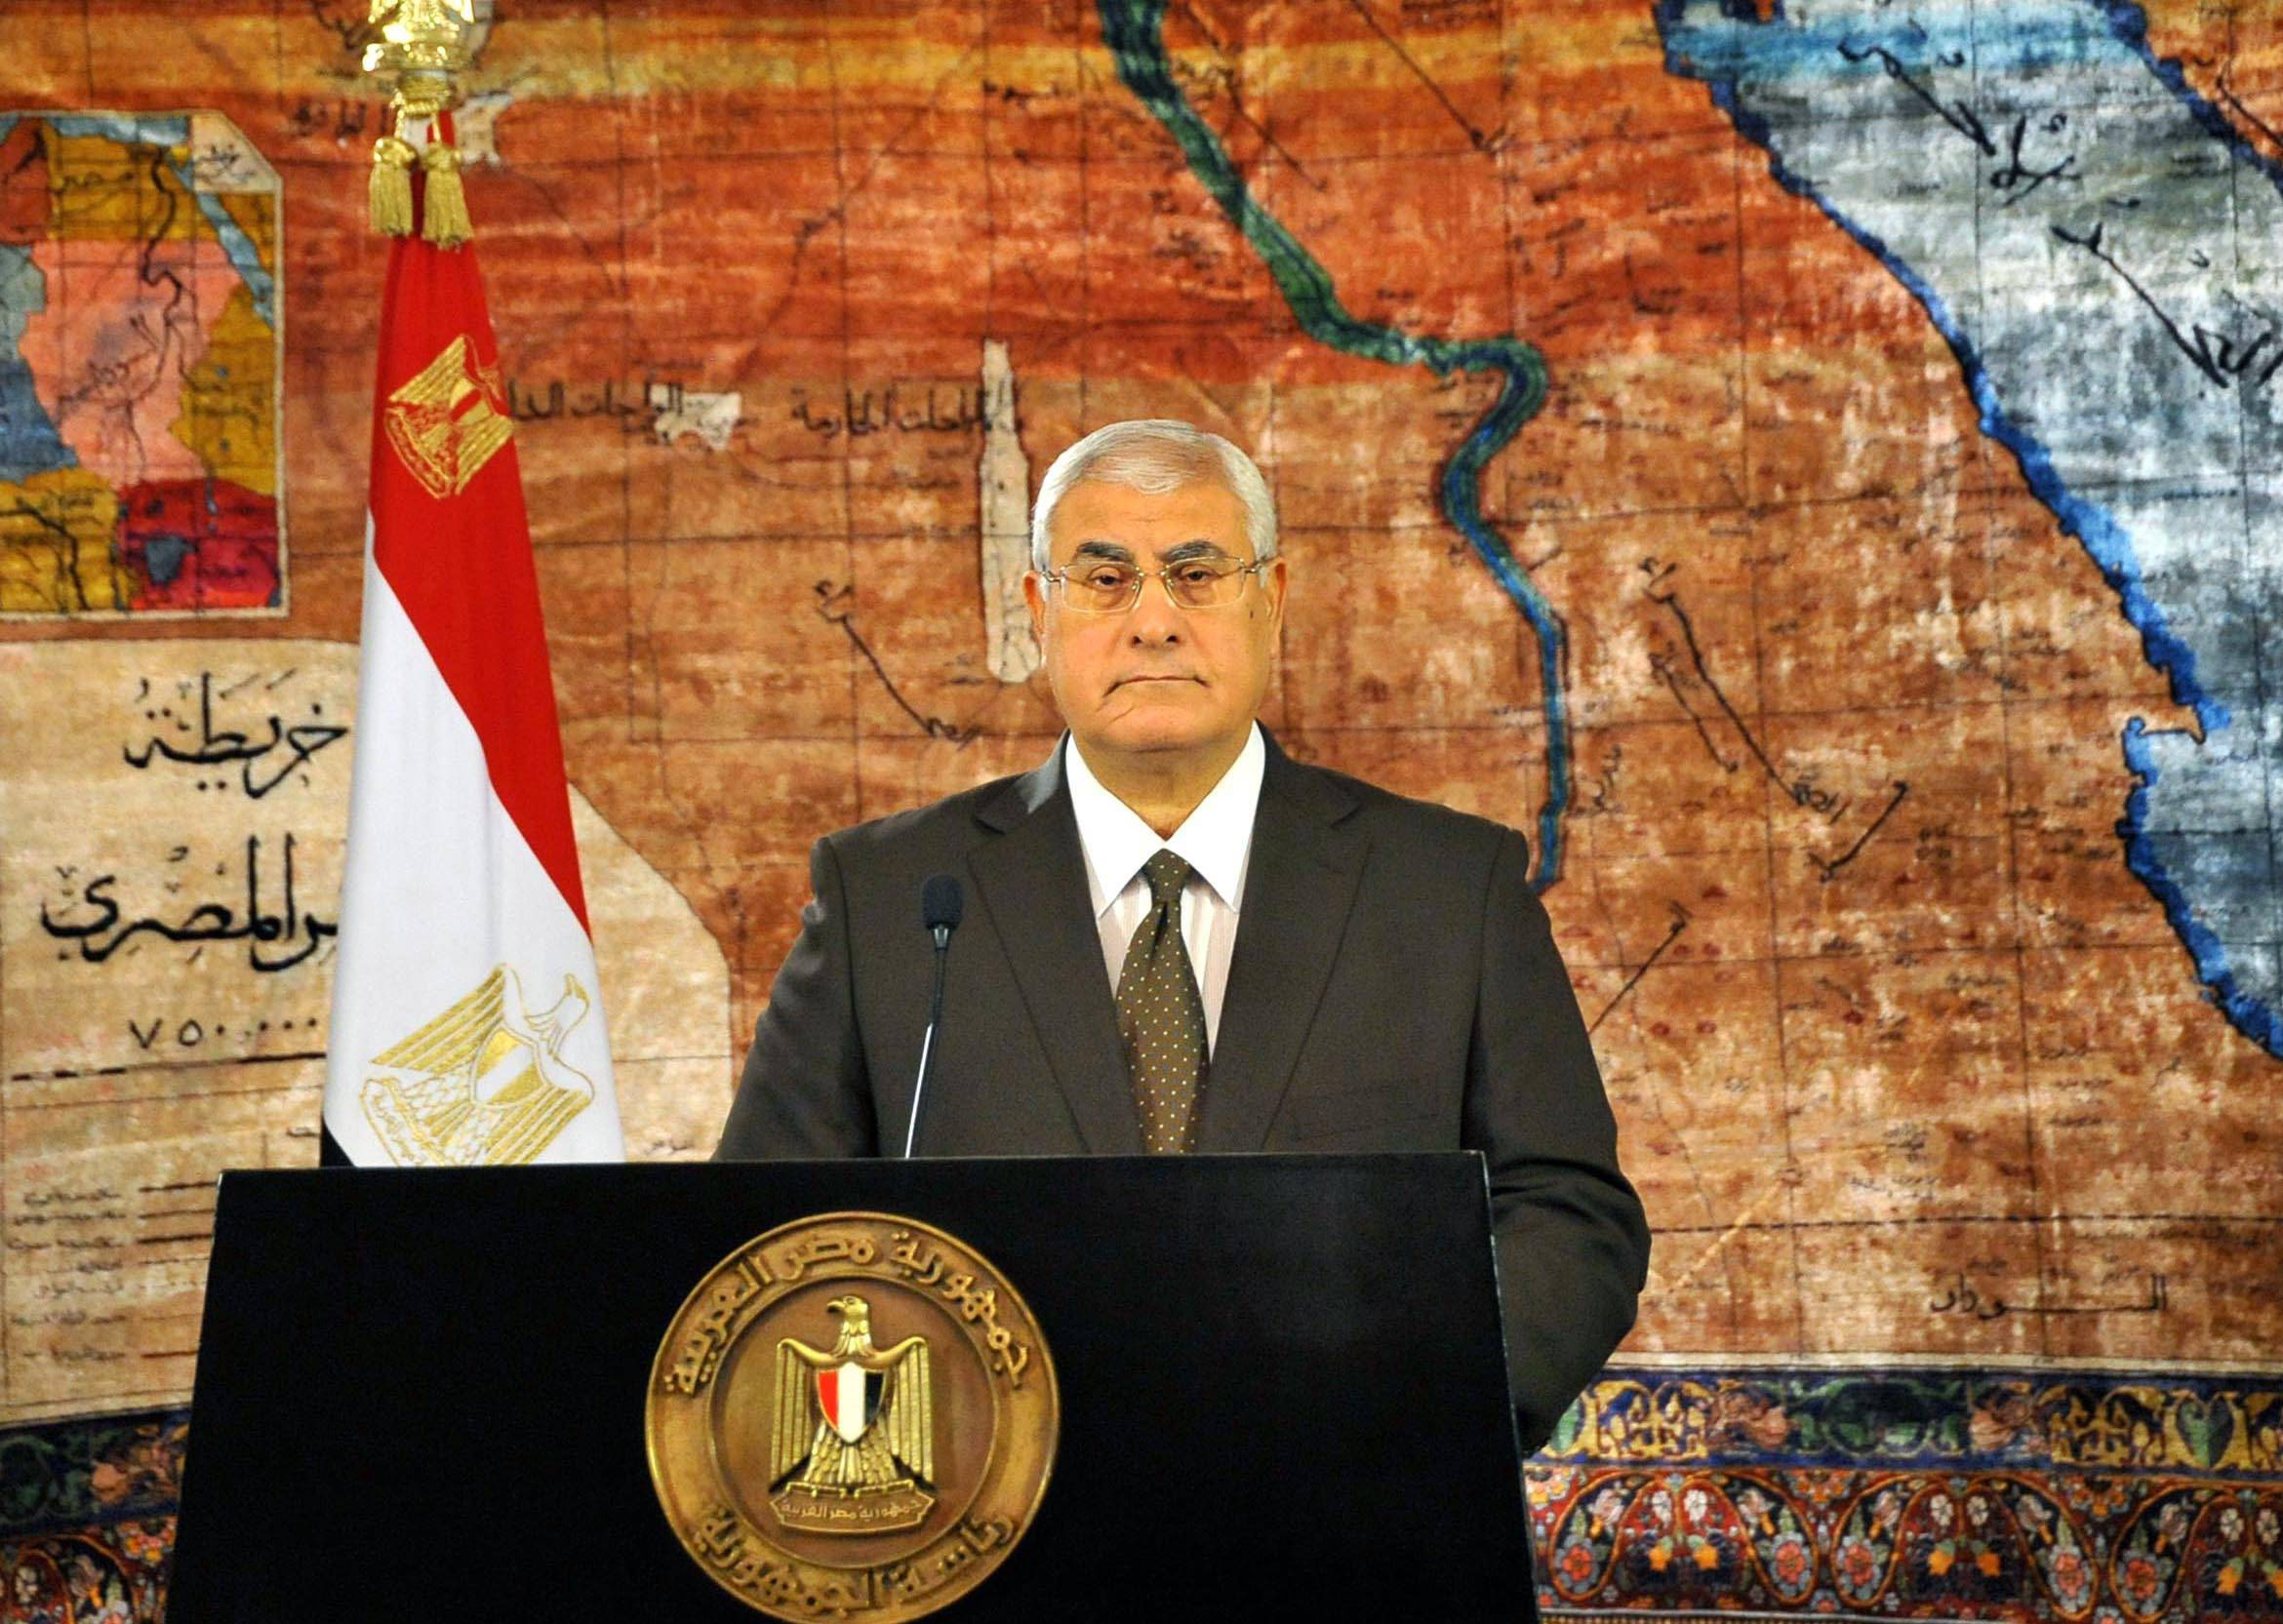 Egypt to allow appeals against military court verdicts